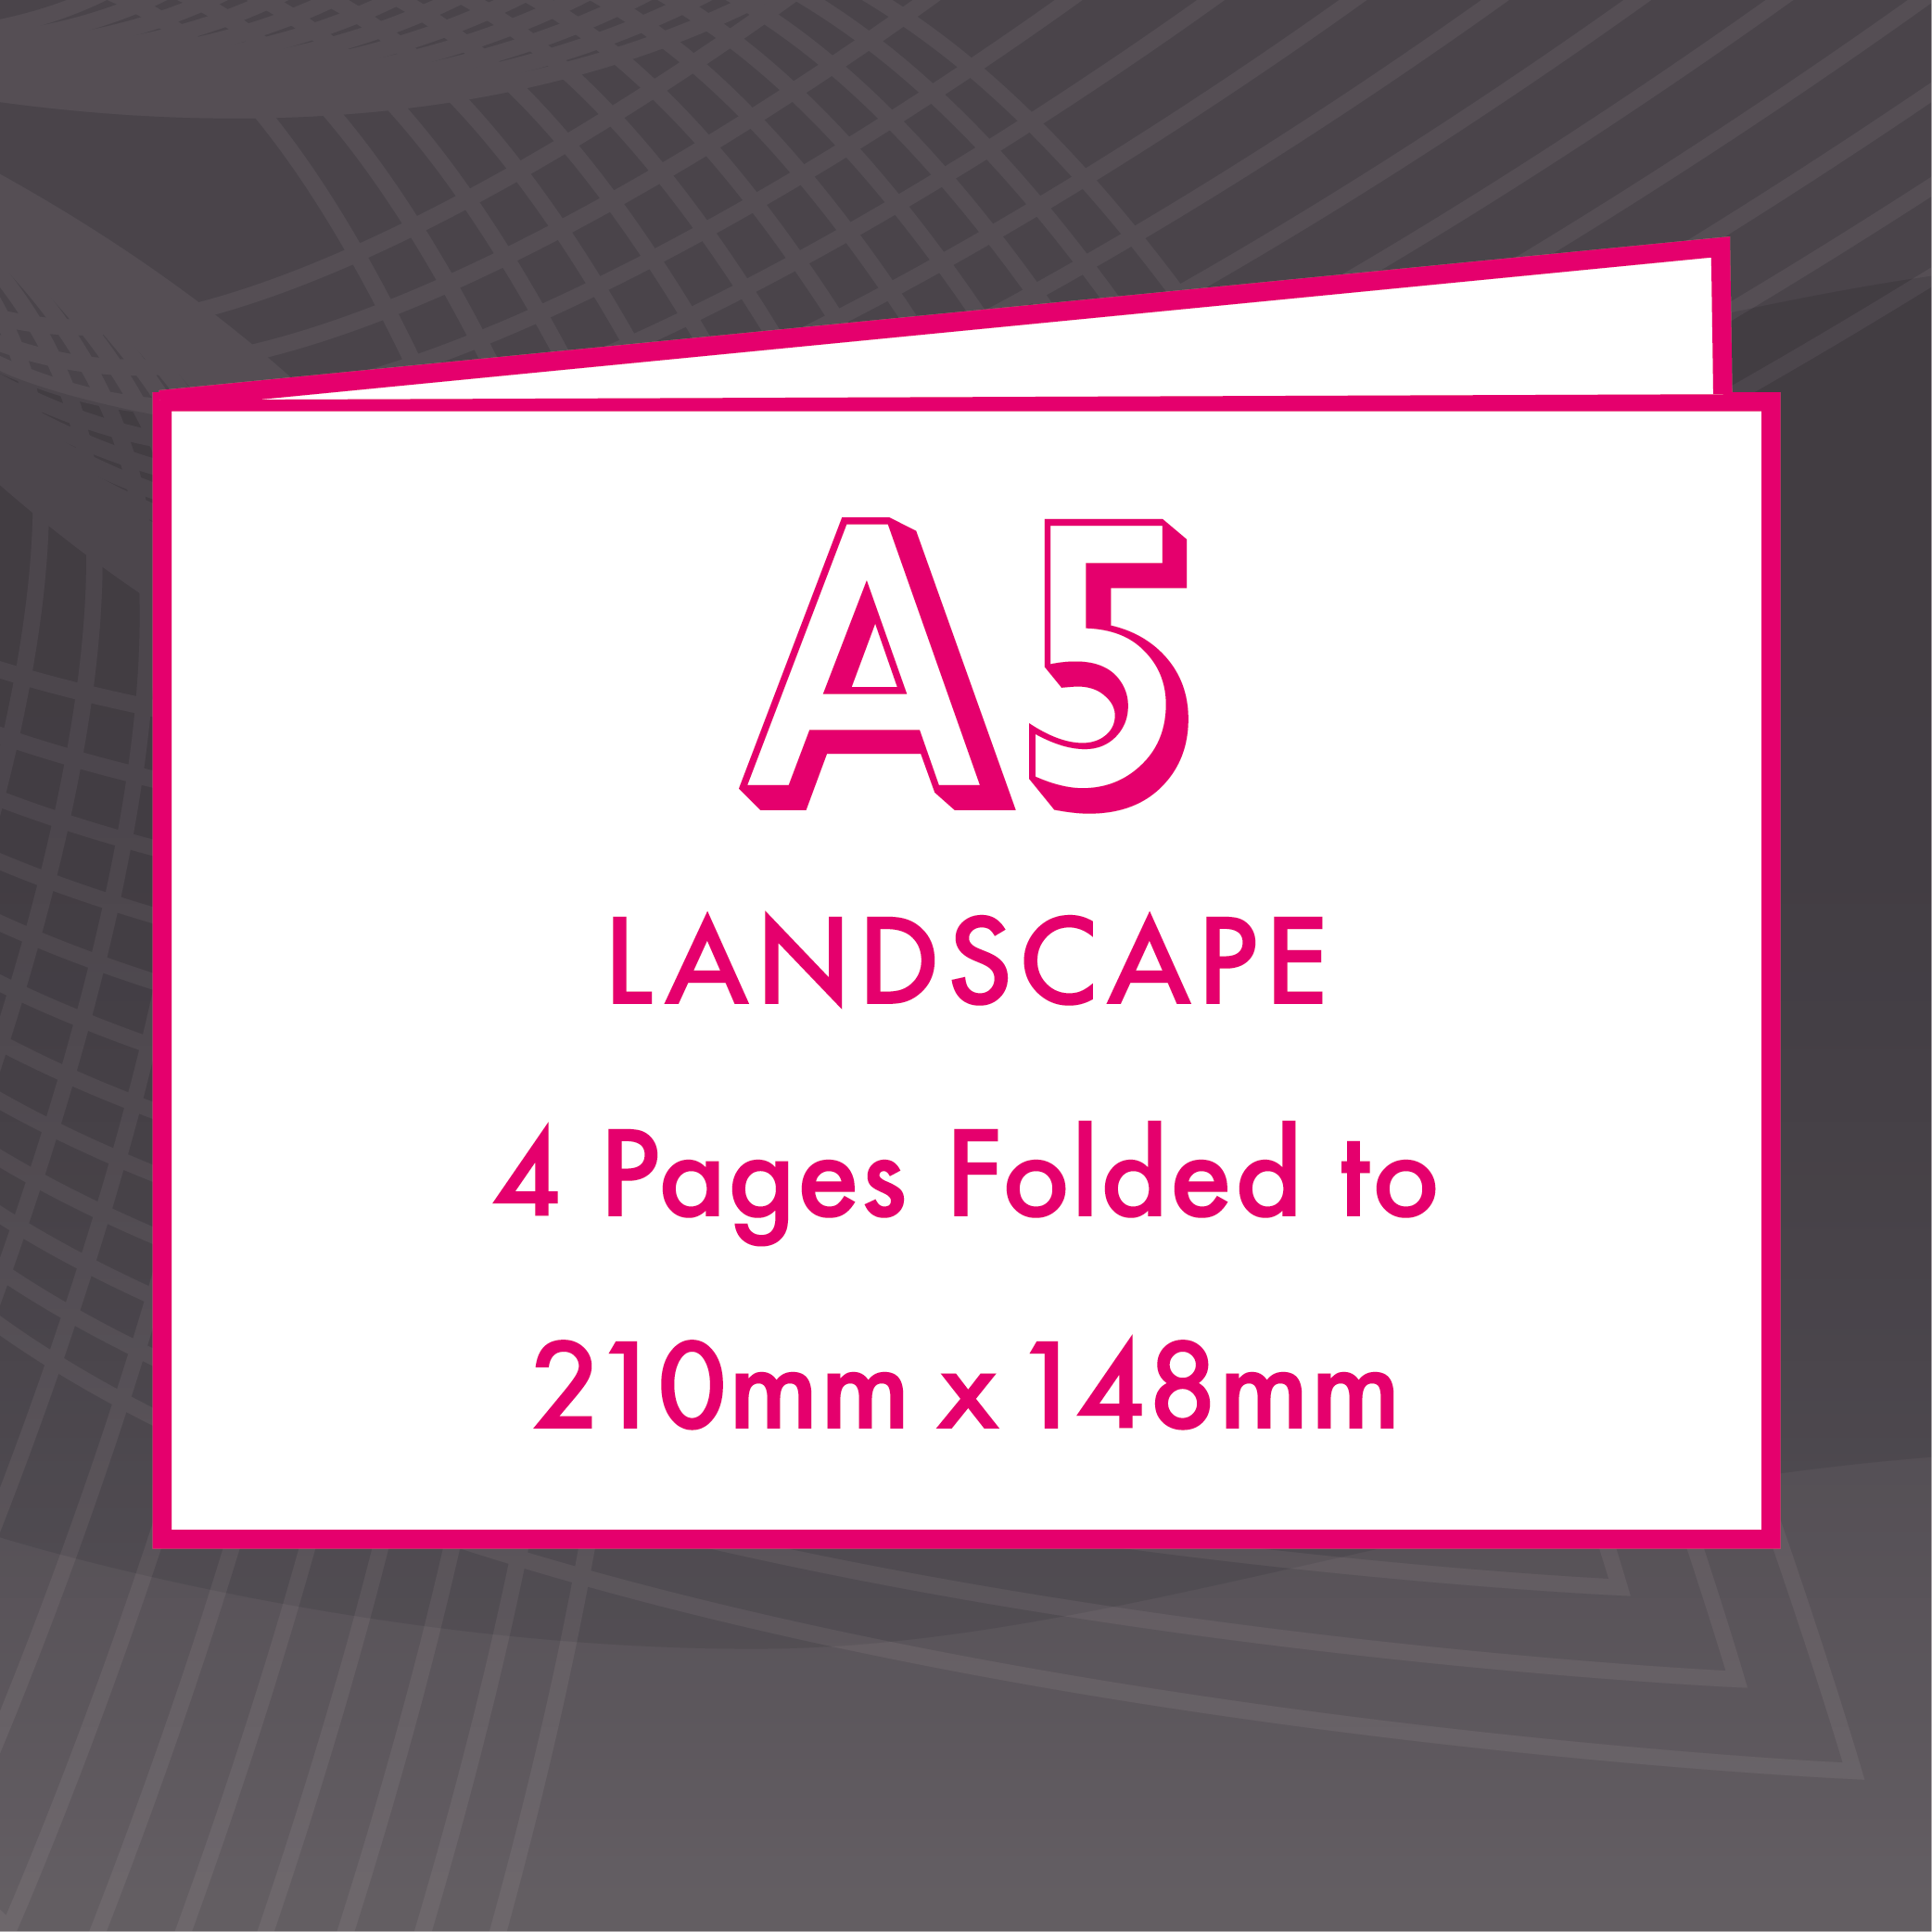 Picture of A5 Landscape - Folded 4 Pages Flyers